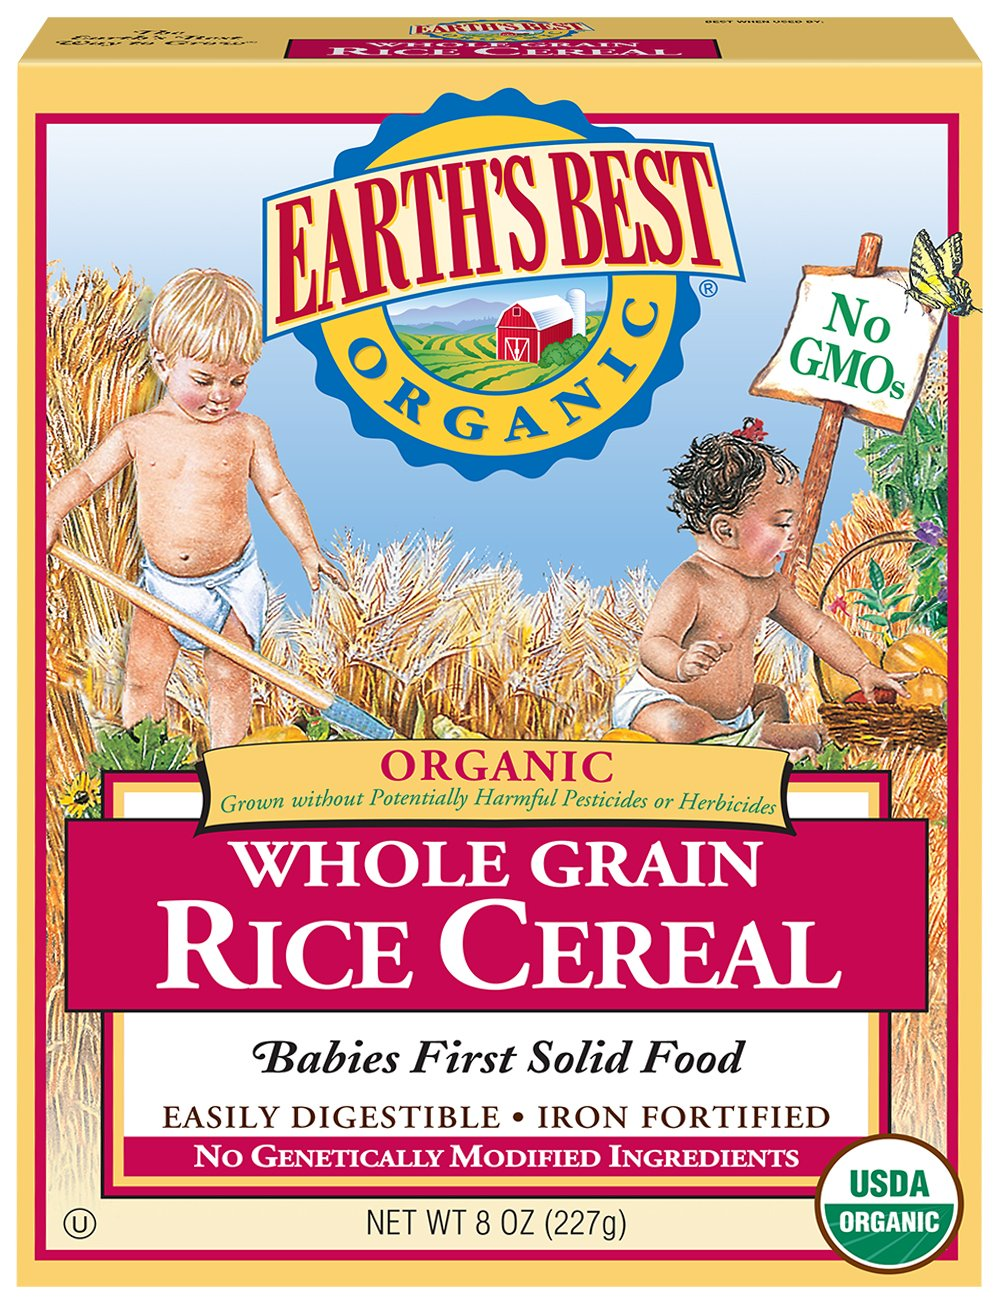 Earth's Best Organic Whole Grain Rice Cereal, 8 Oz Earth's Best 023923900011